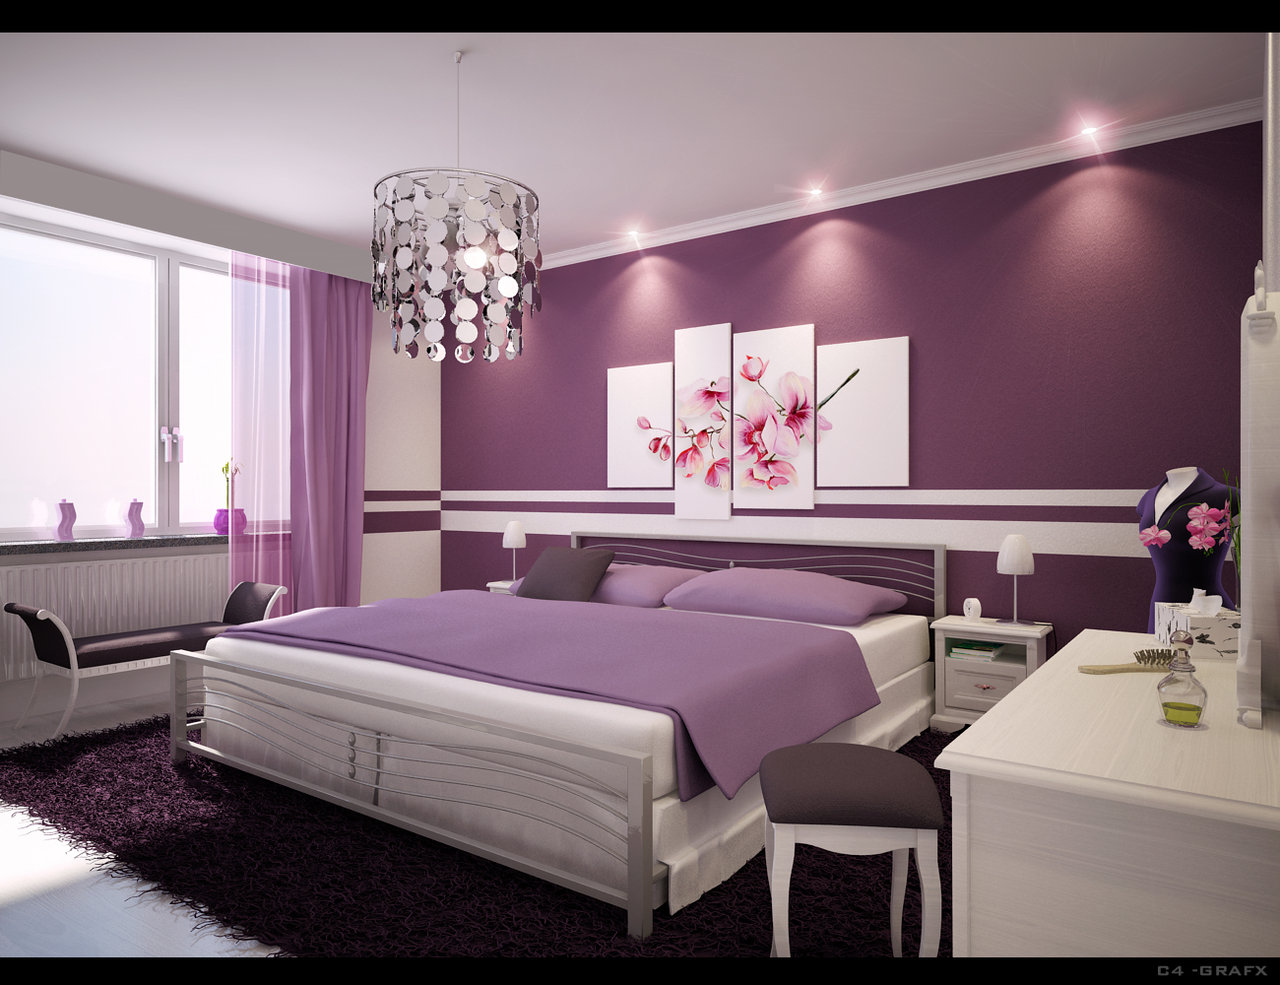 Wonderful Girls Bedroom Interior Design Ideas 1280 x 985 · 201 kB · jpeg